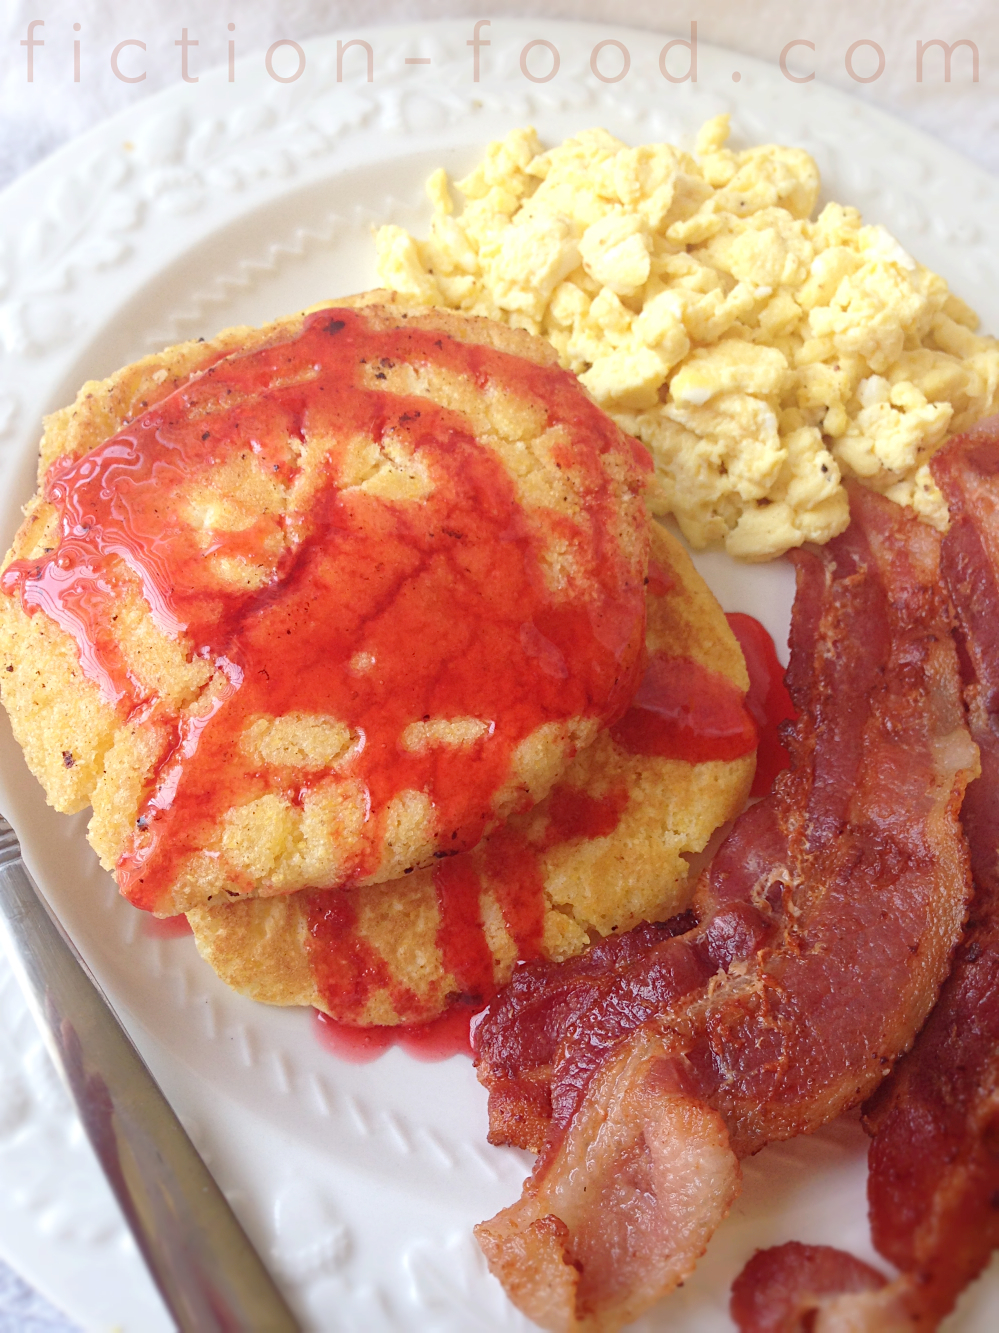 "Fiction-Food Café: Hoecakes Cooked in Bacon Grease from ""True Blood"""